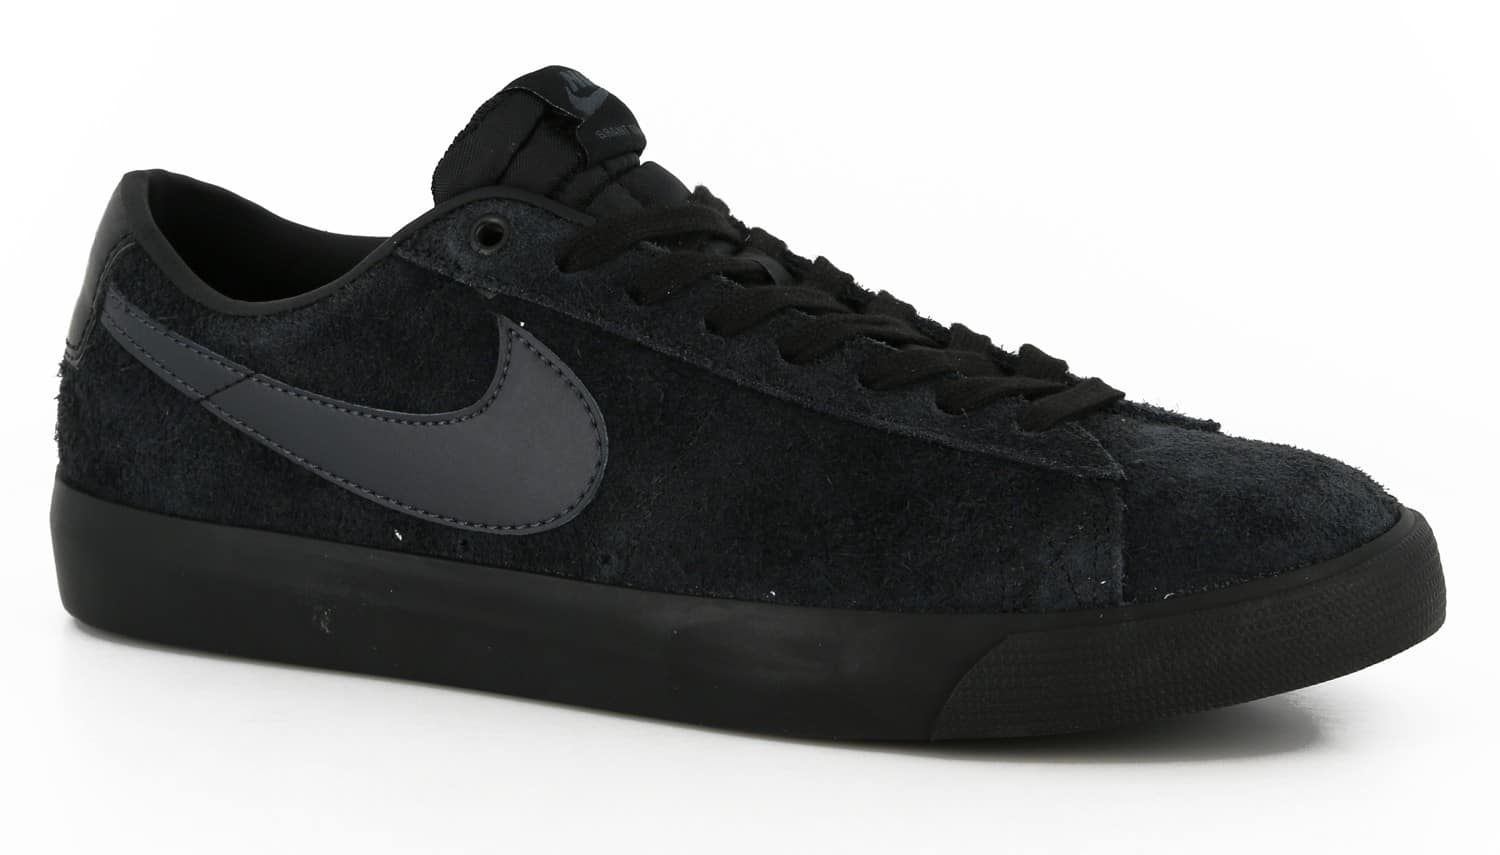 Nike SB Blazer Low GT Skate Shoes - black/black/anthracite